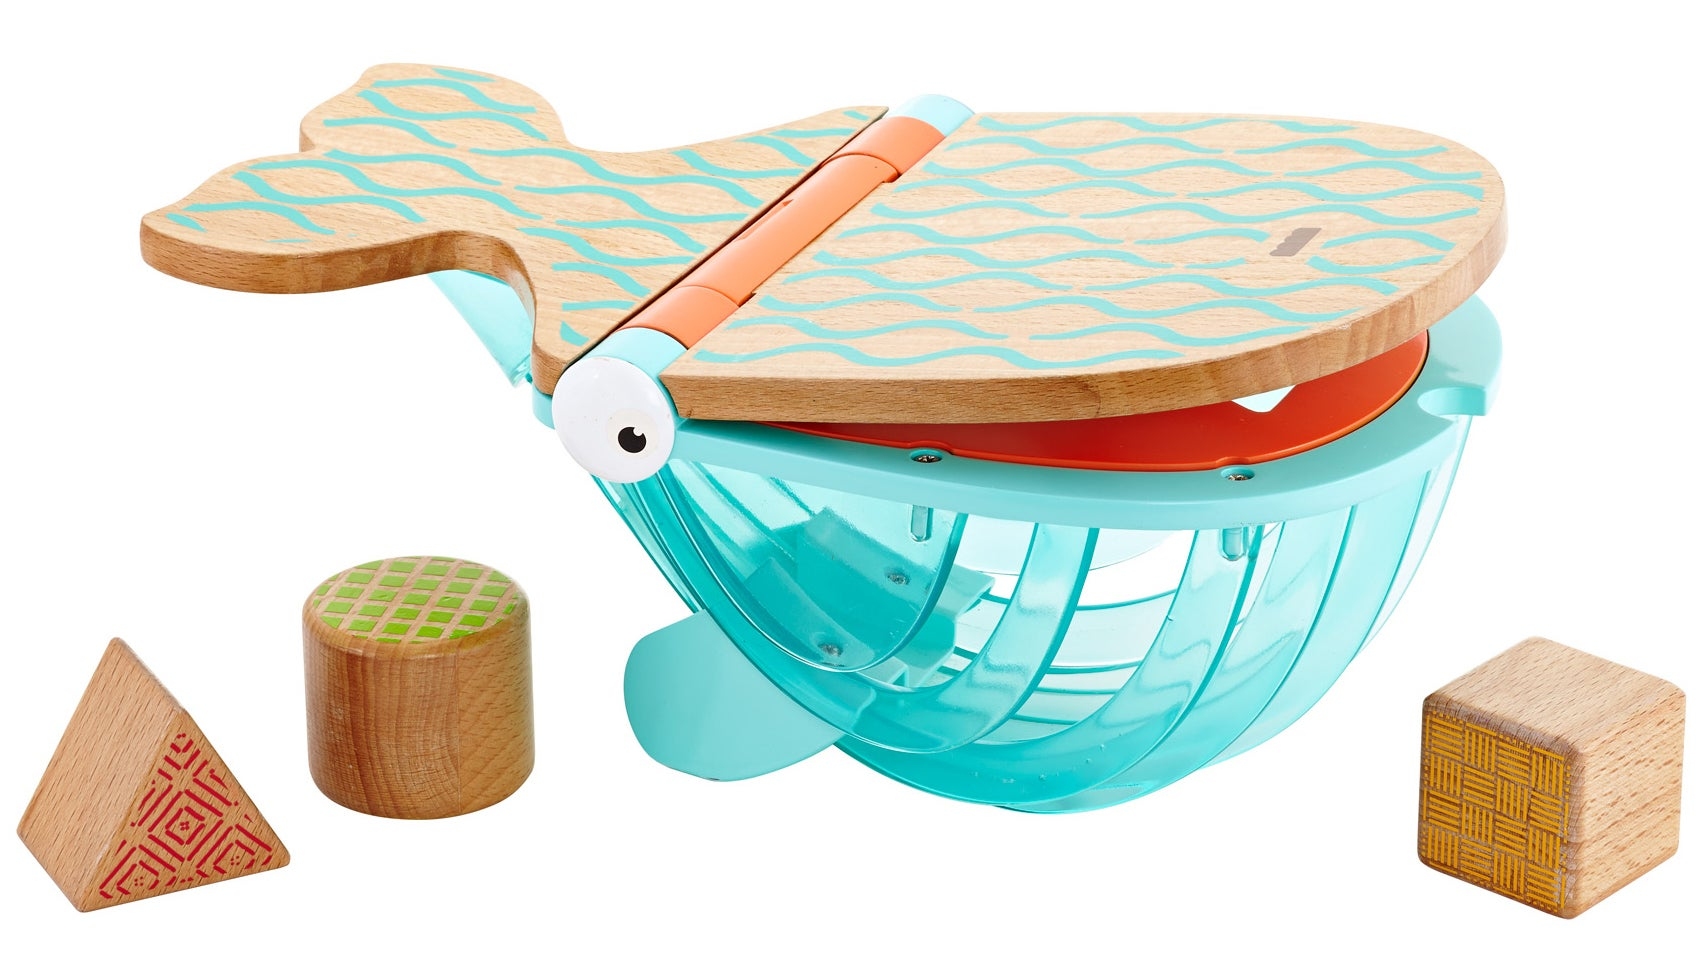 Fisher-Price's Gorgeous New Wooden Toy Line Will Make You Want to Have Kids